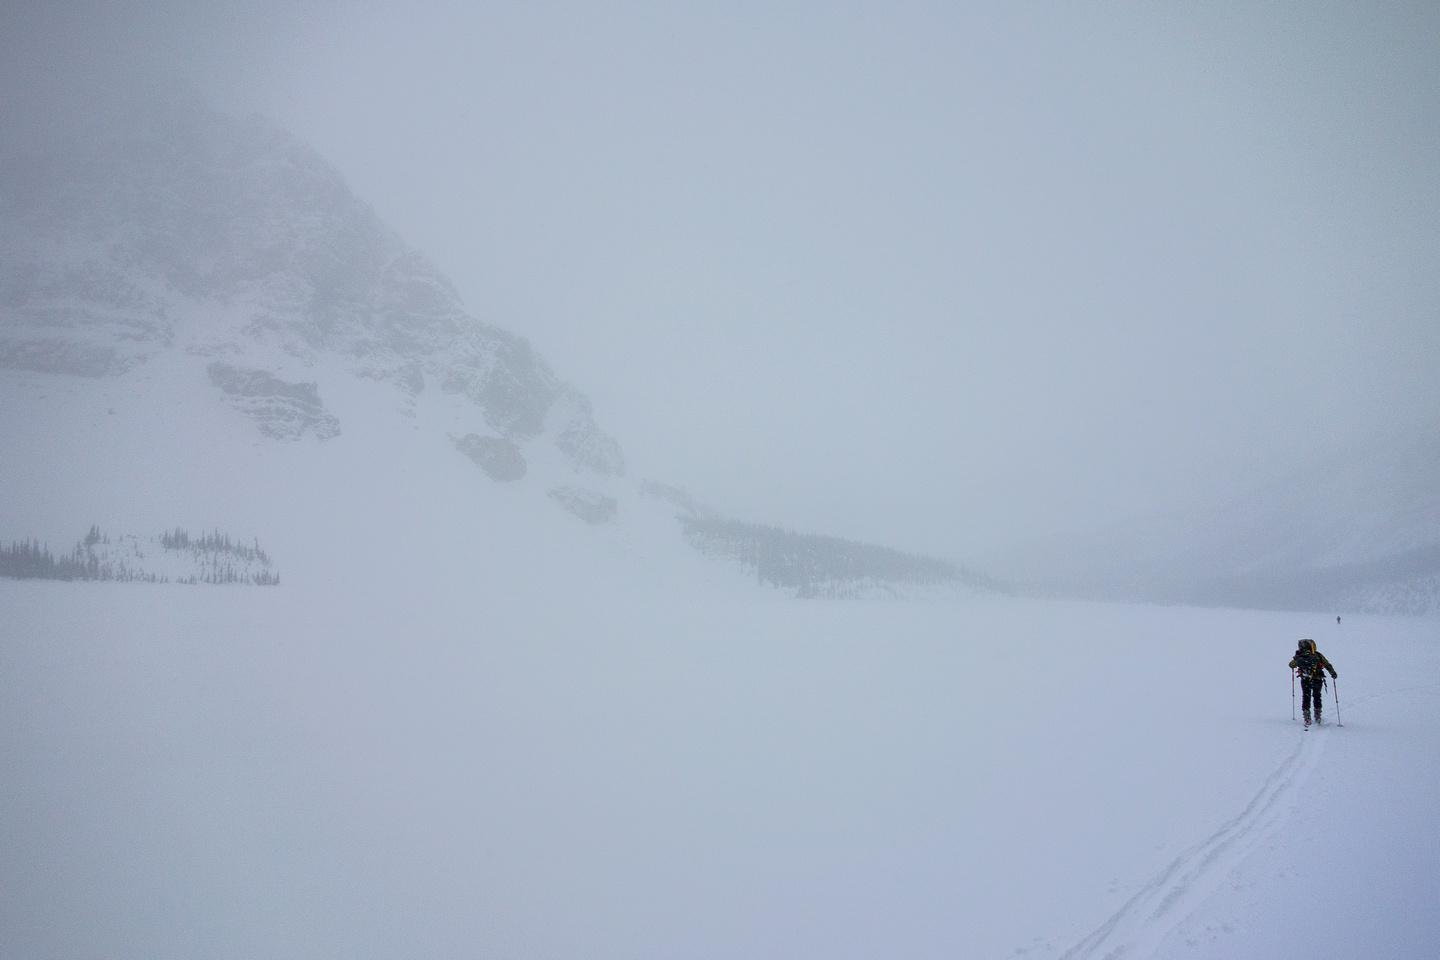 Skiing across Bow Lake in a white-out